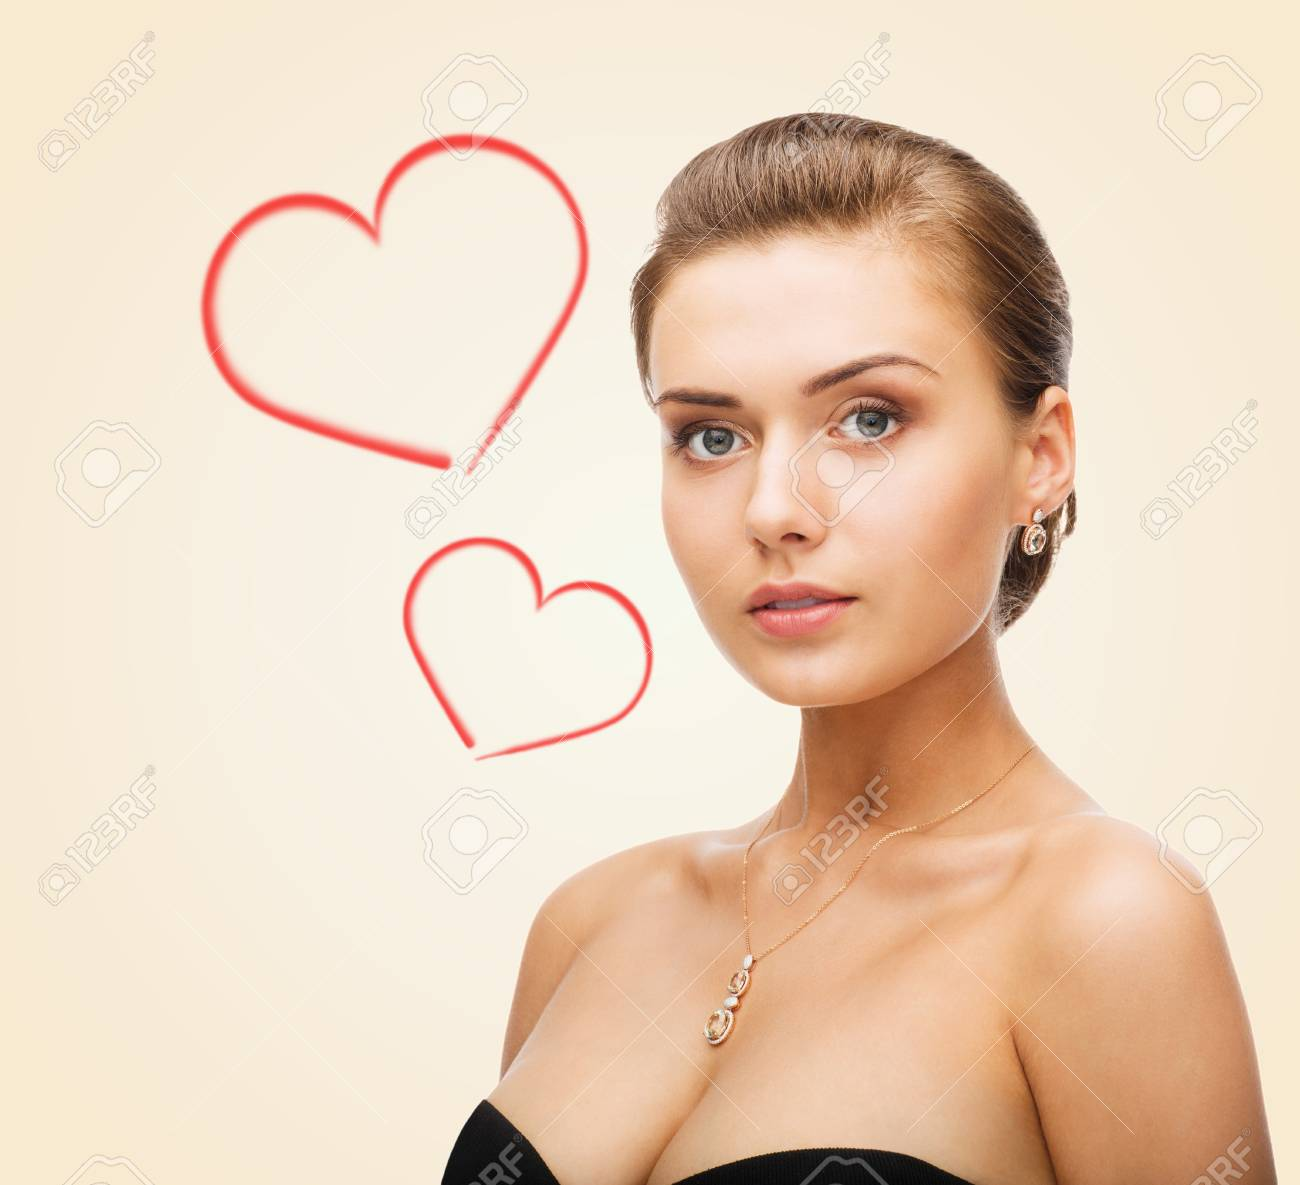 beauty, love and jewelry concept - charming woman wearing shiny diamond earrings Stock Photo - 24371229